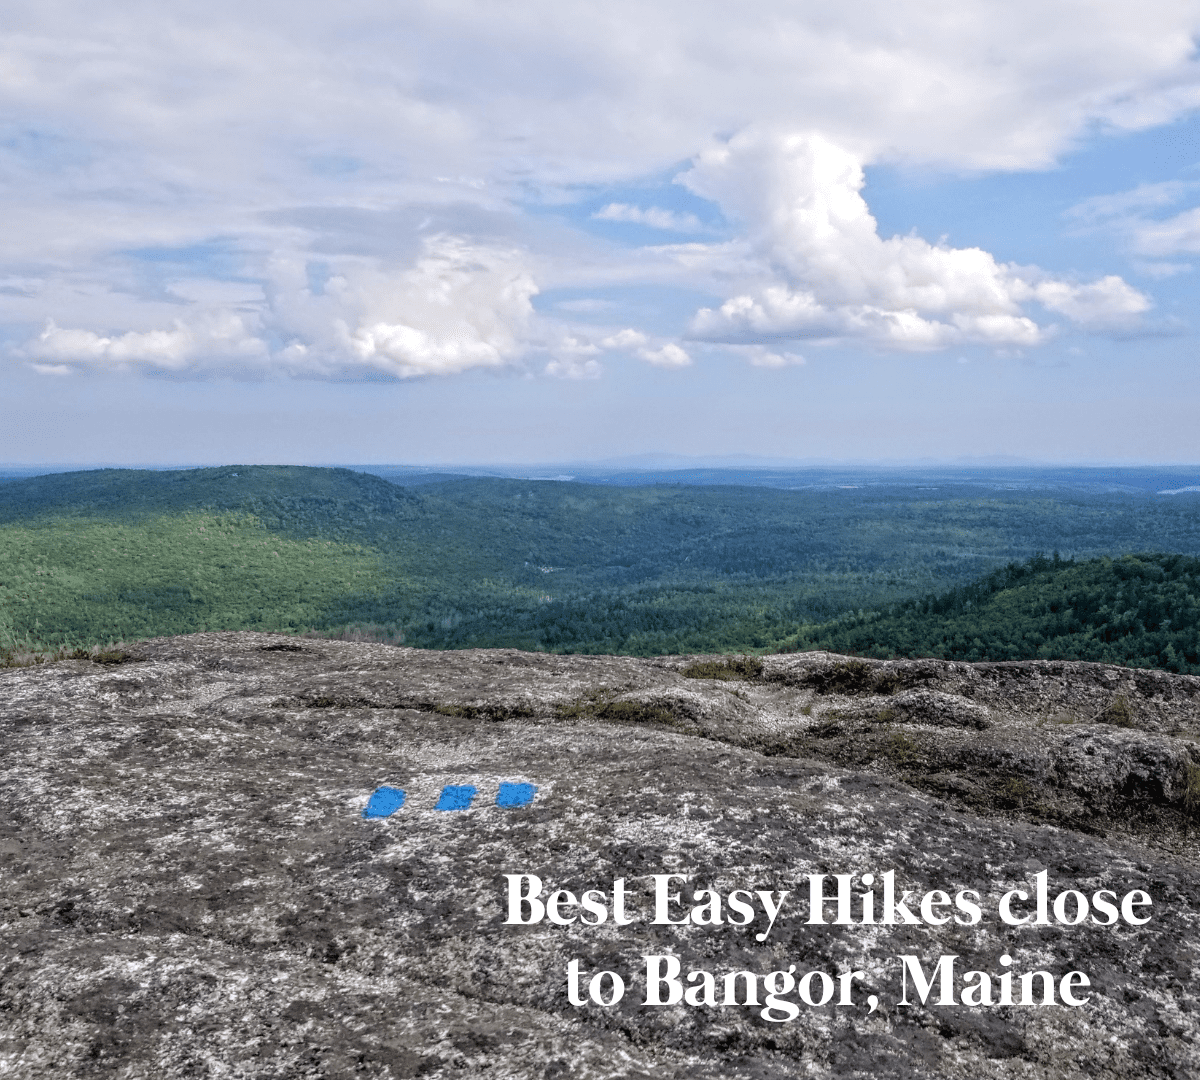 Best Easy Hikes close to Bangor, Maine